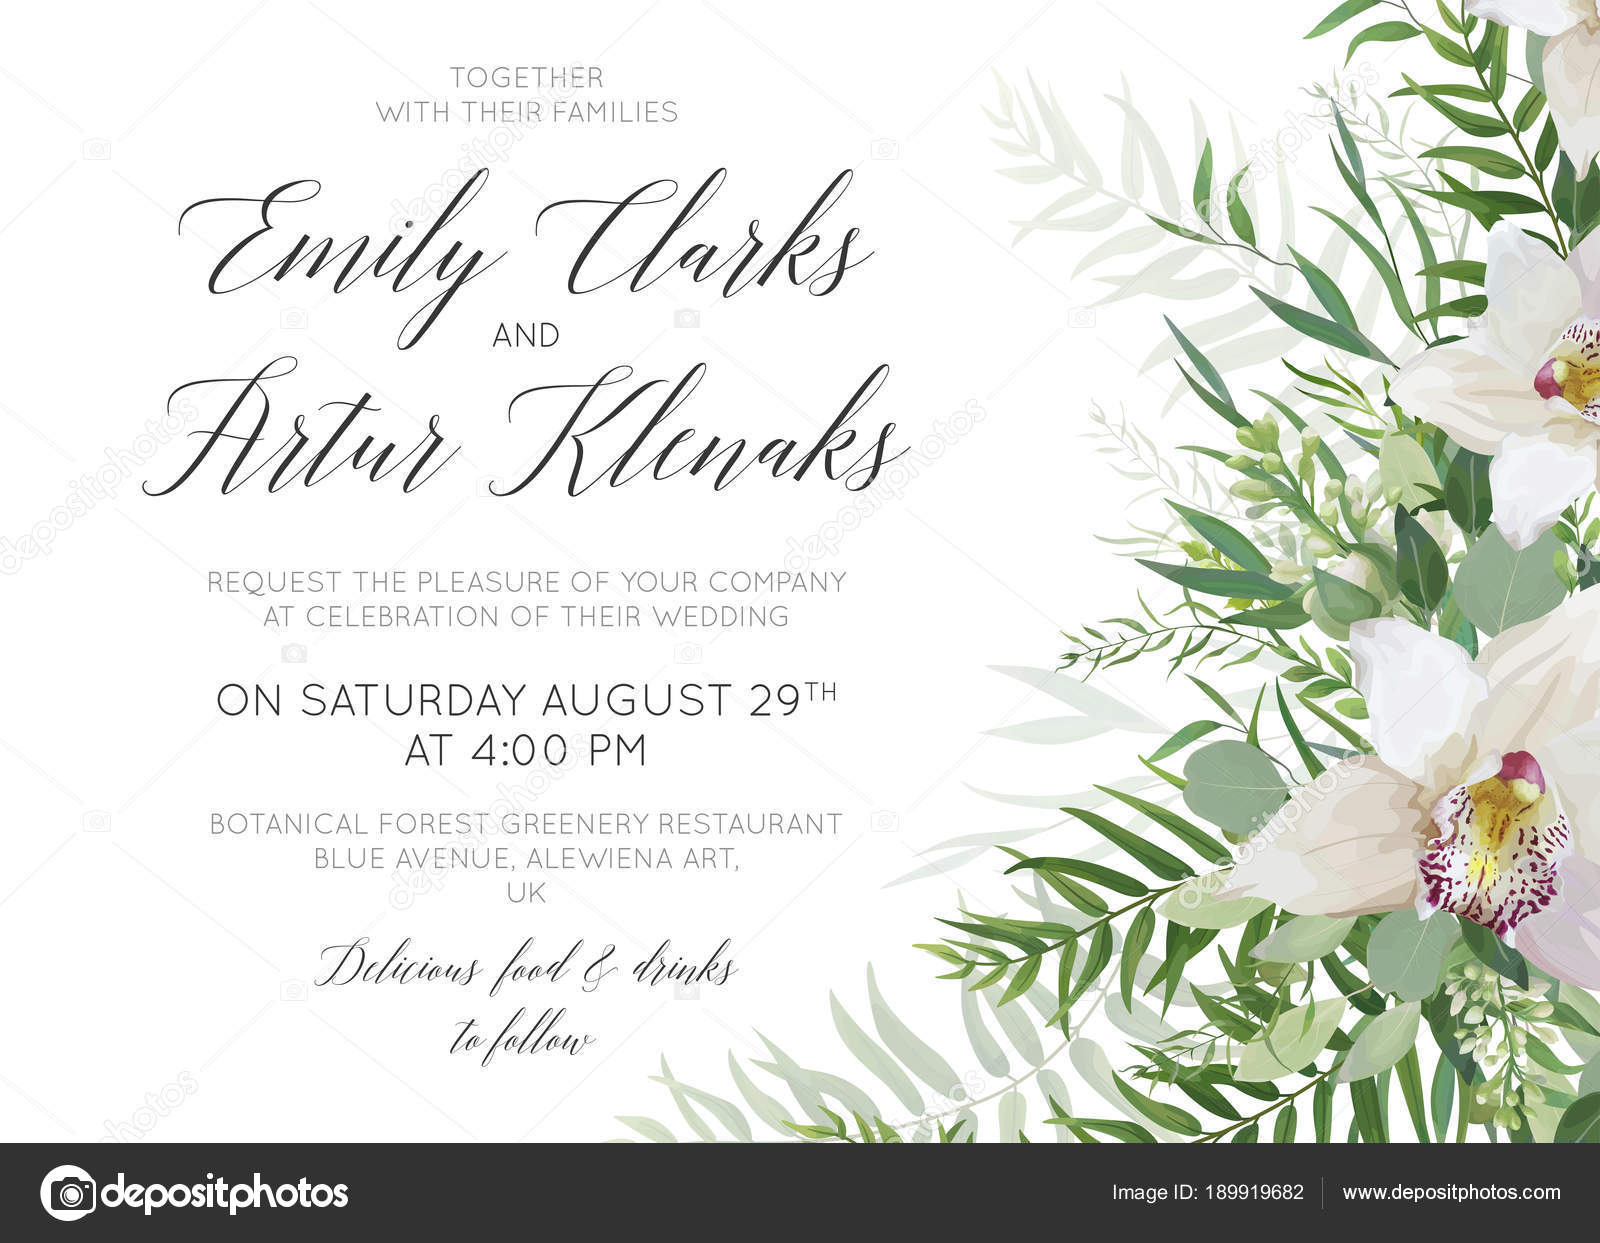 Wedding invite save the date card delicate design with white orchid ...